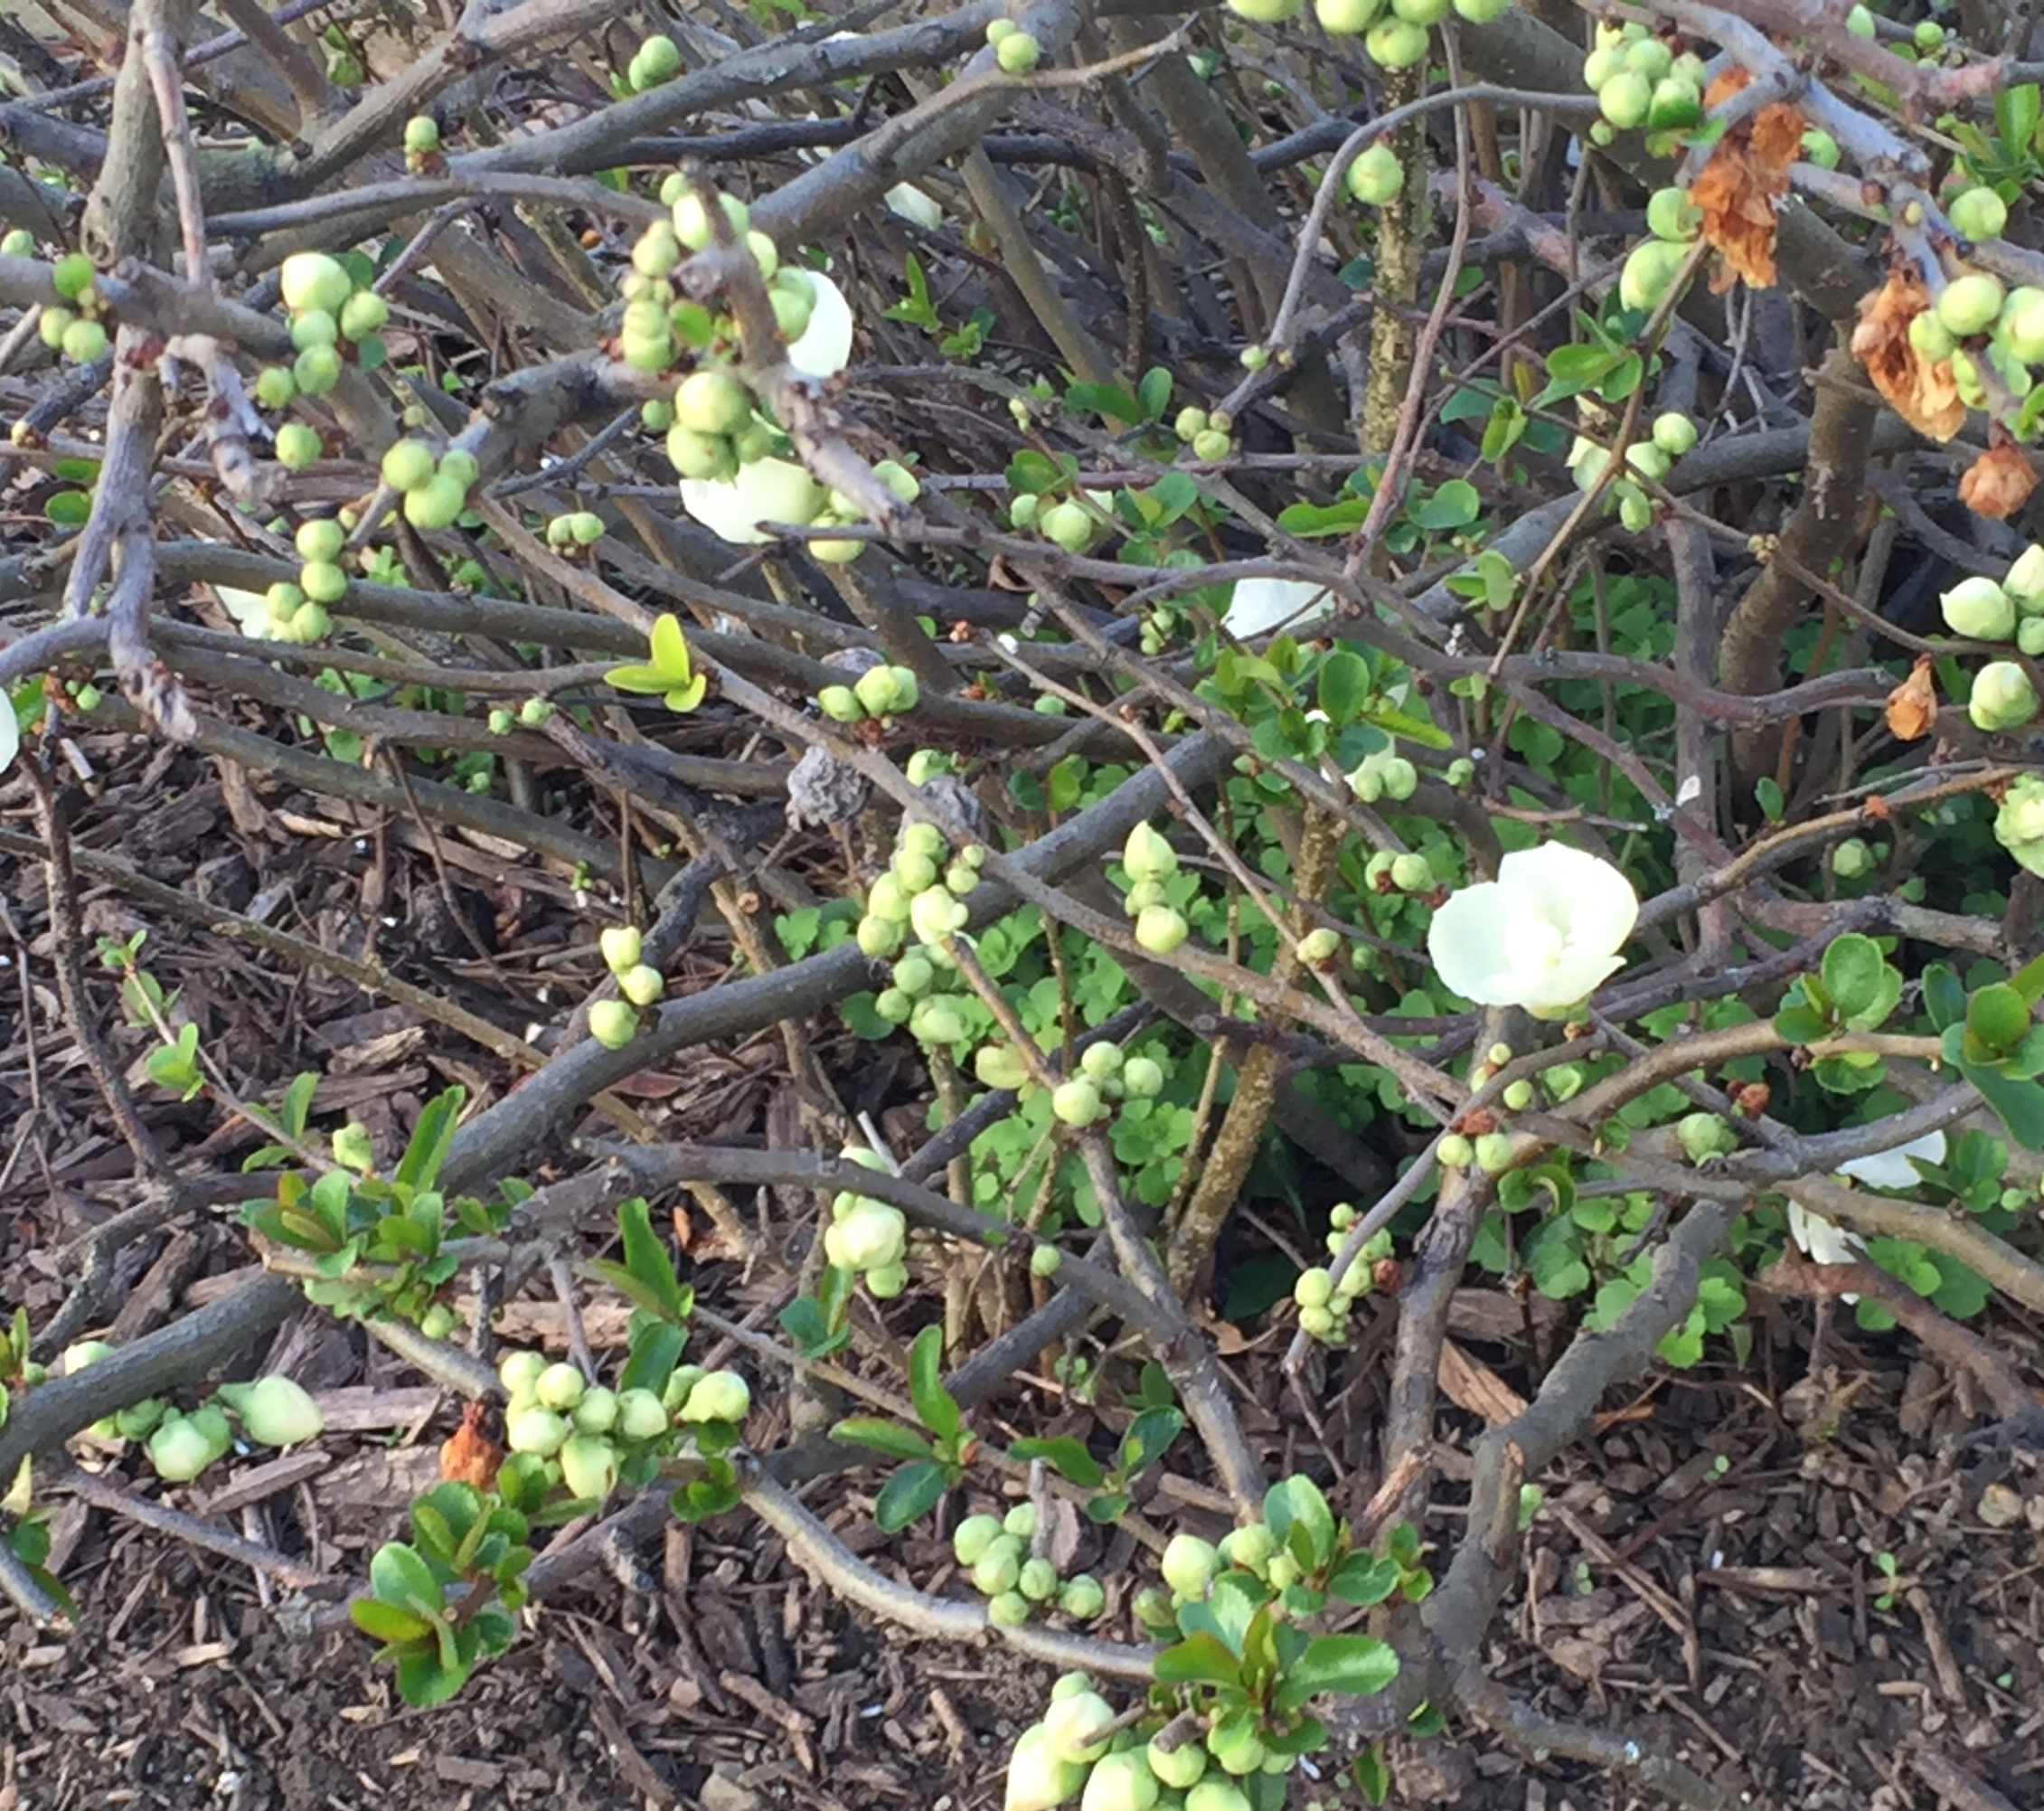 The flowering quince bush outside my parents' home. Yesterday it seemed to have one green shoot emerging. This morning there are buds and flowers!